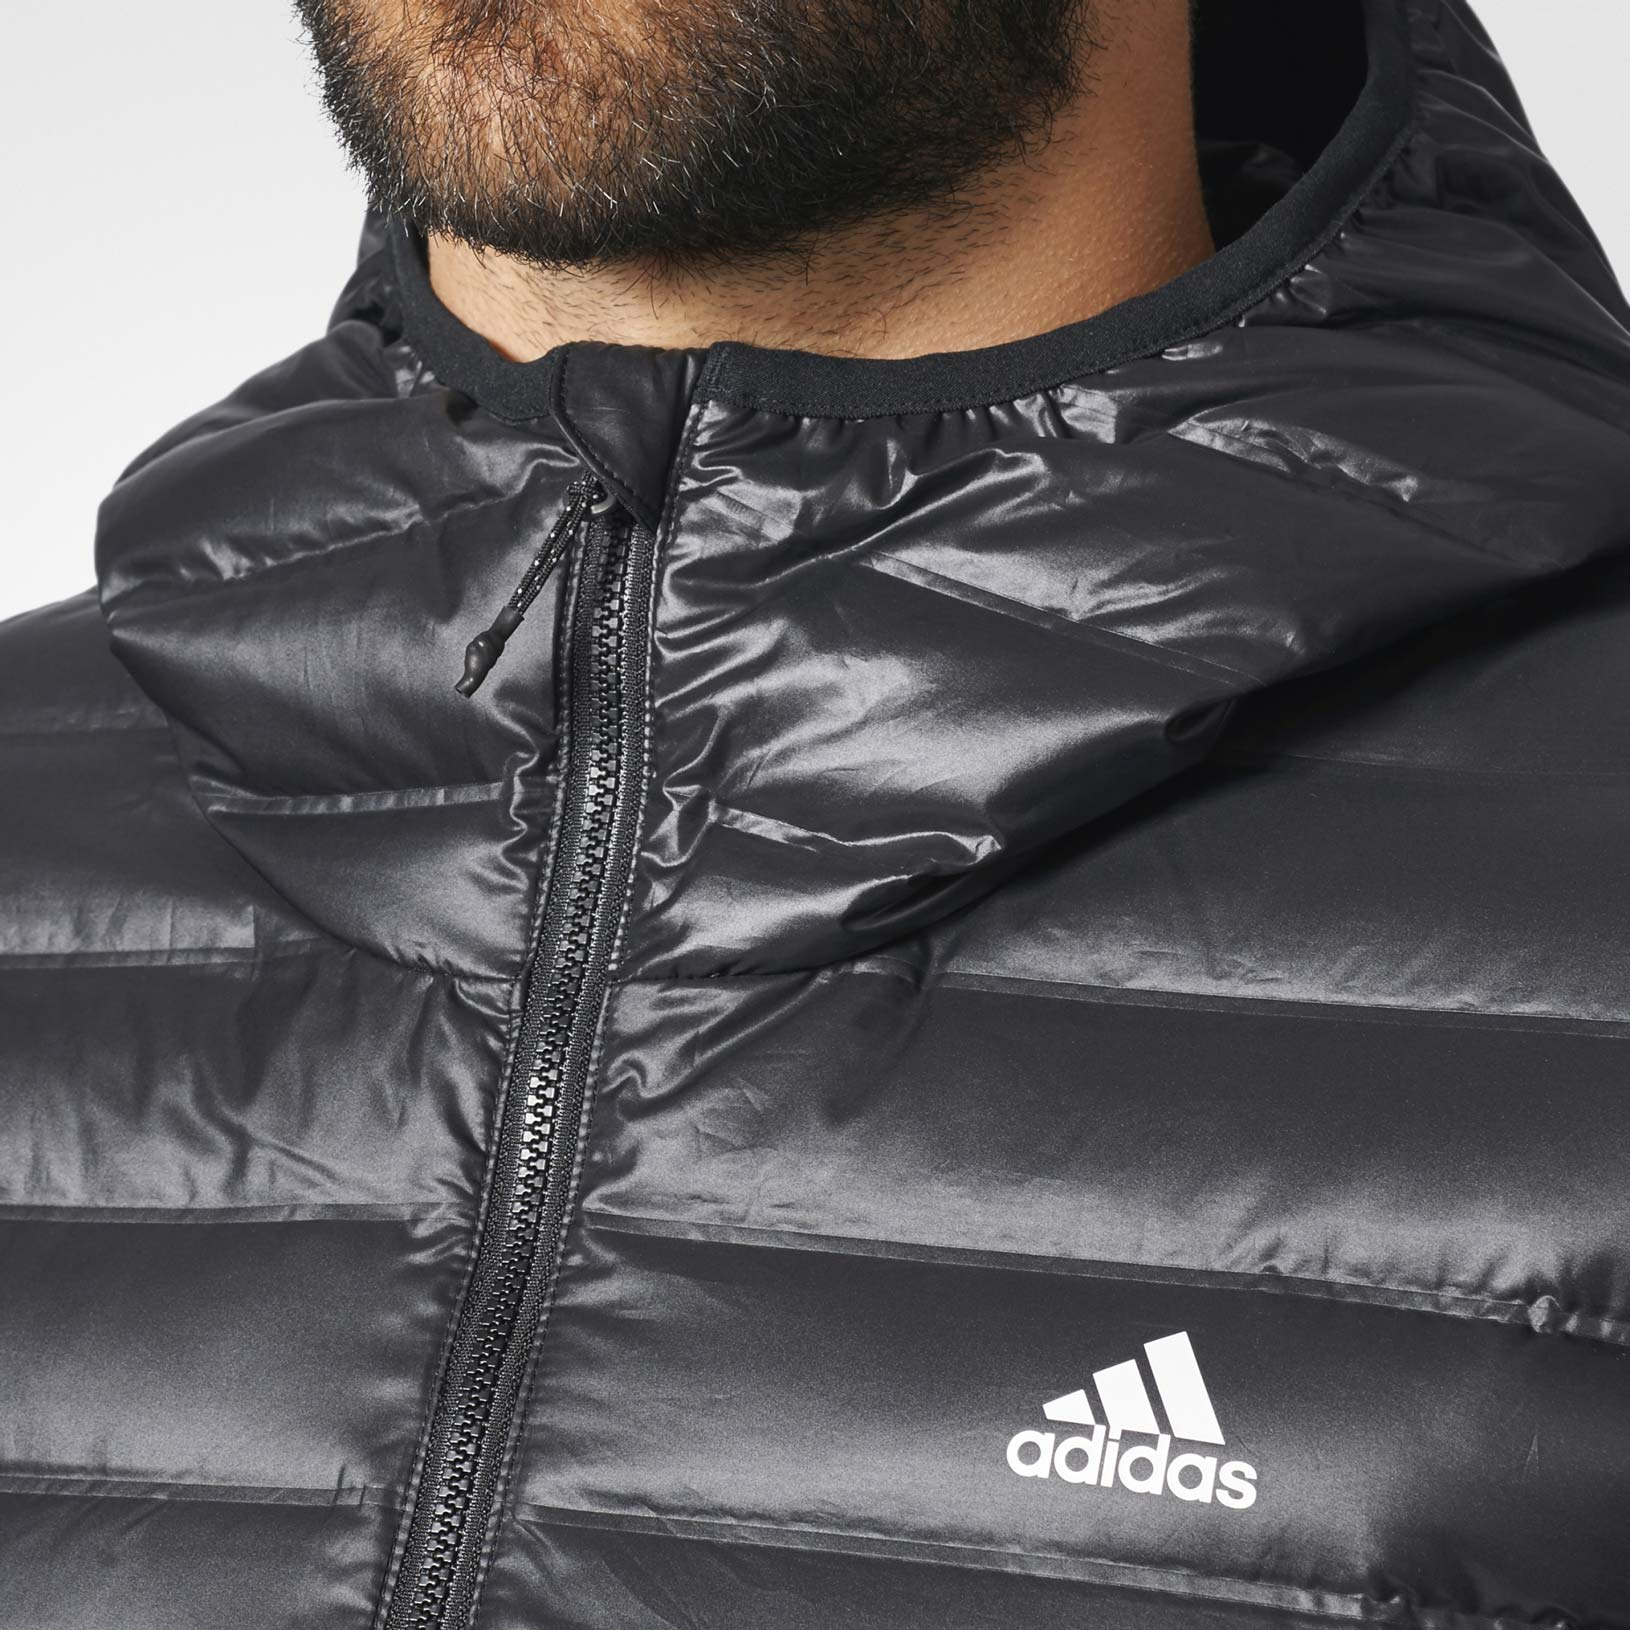 adidas VARILITE HOODED JACKET  695c0802efc